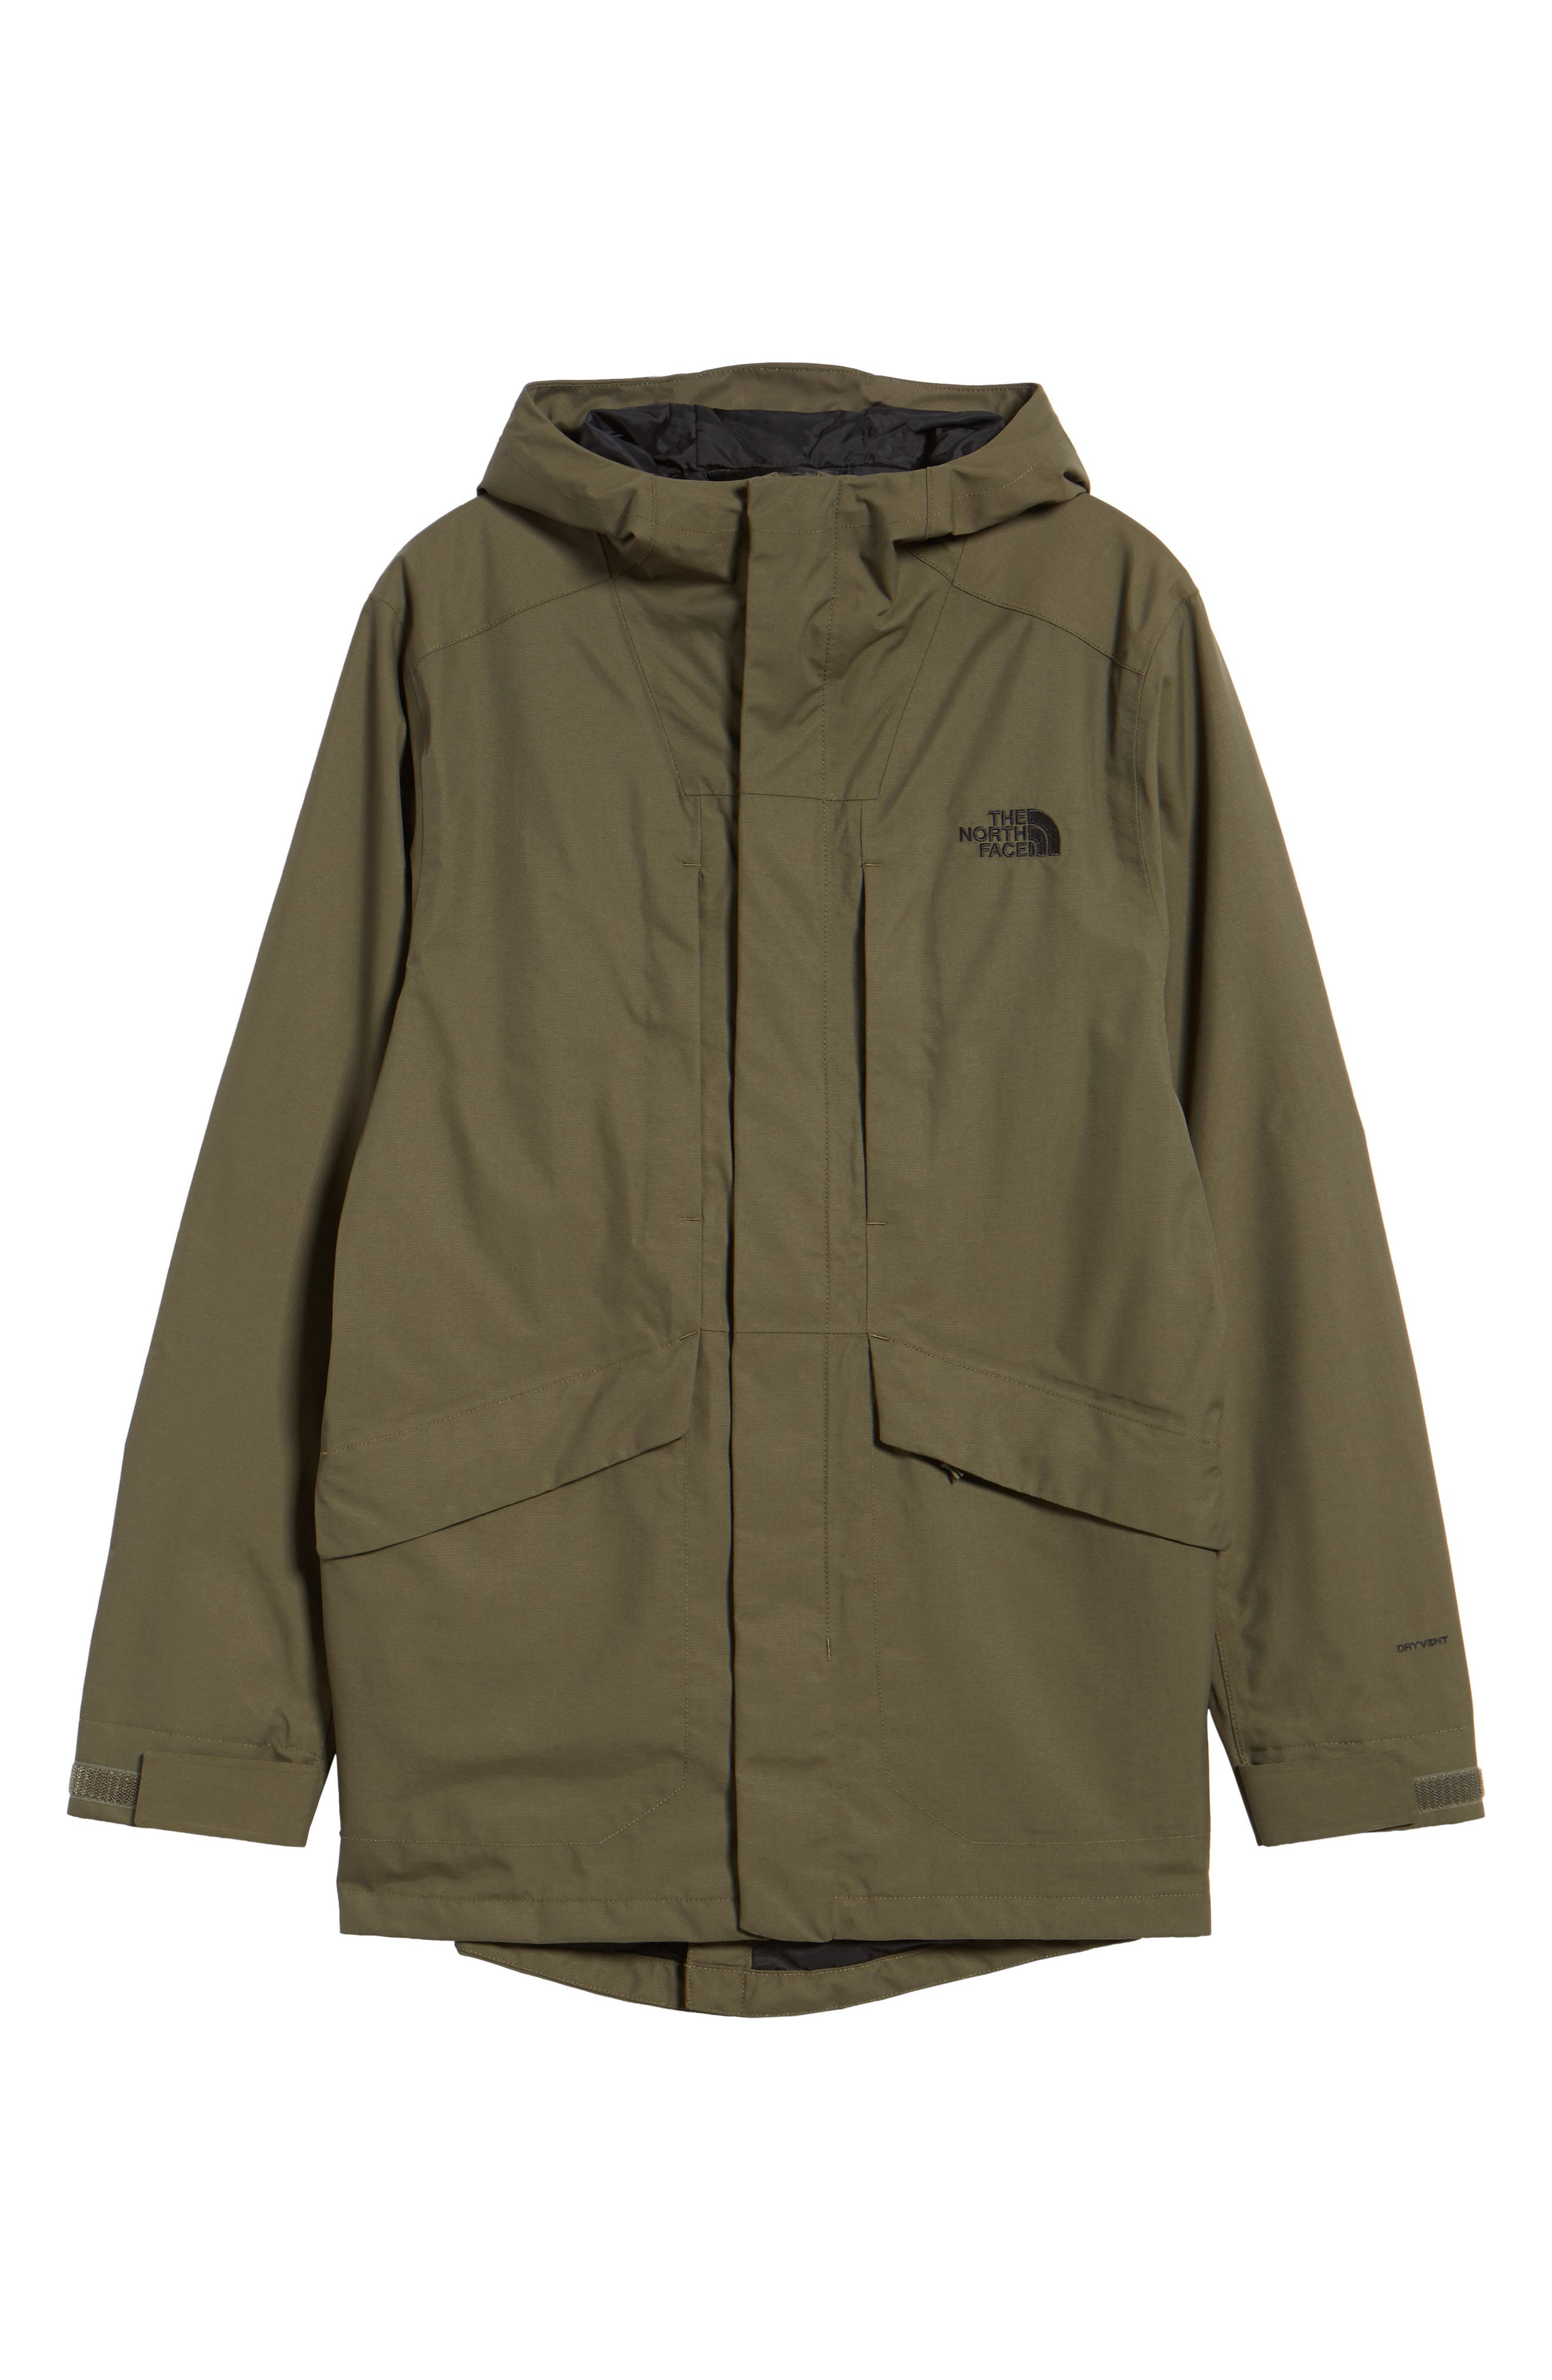 El Misti Trench II Hooded Jacket,                             Alternate thumbnail 6, color,                             New Taupe Green